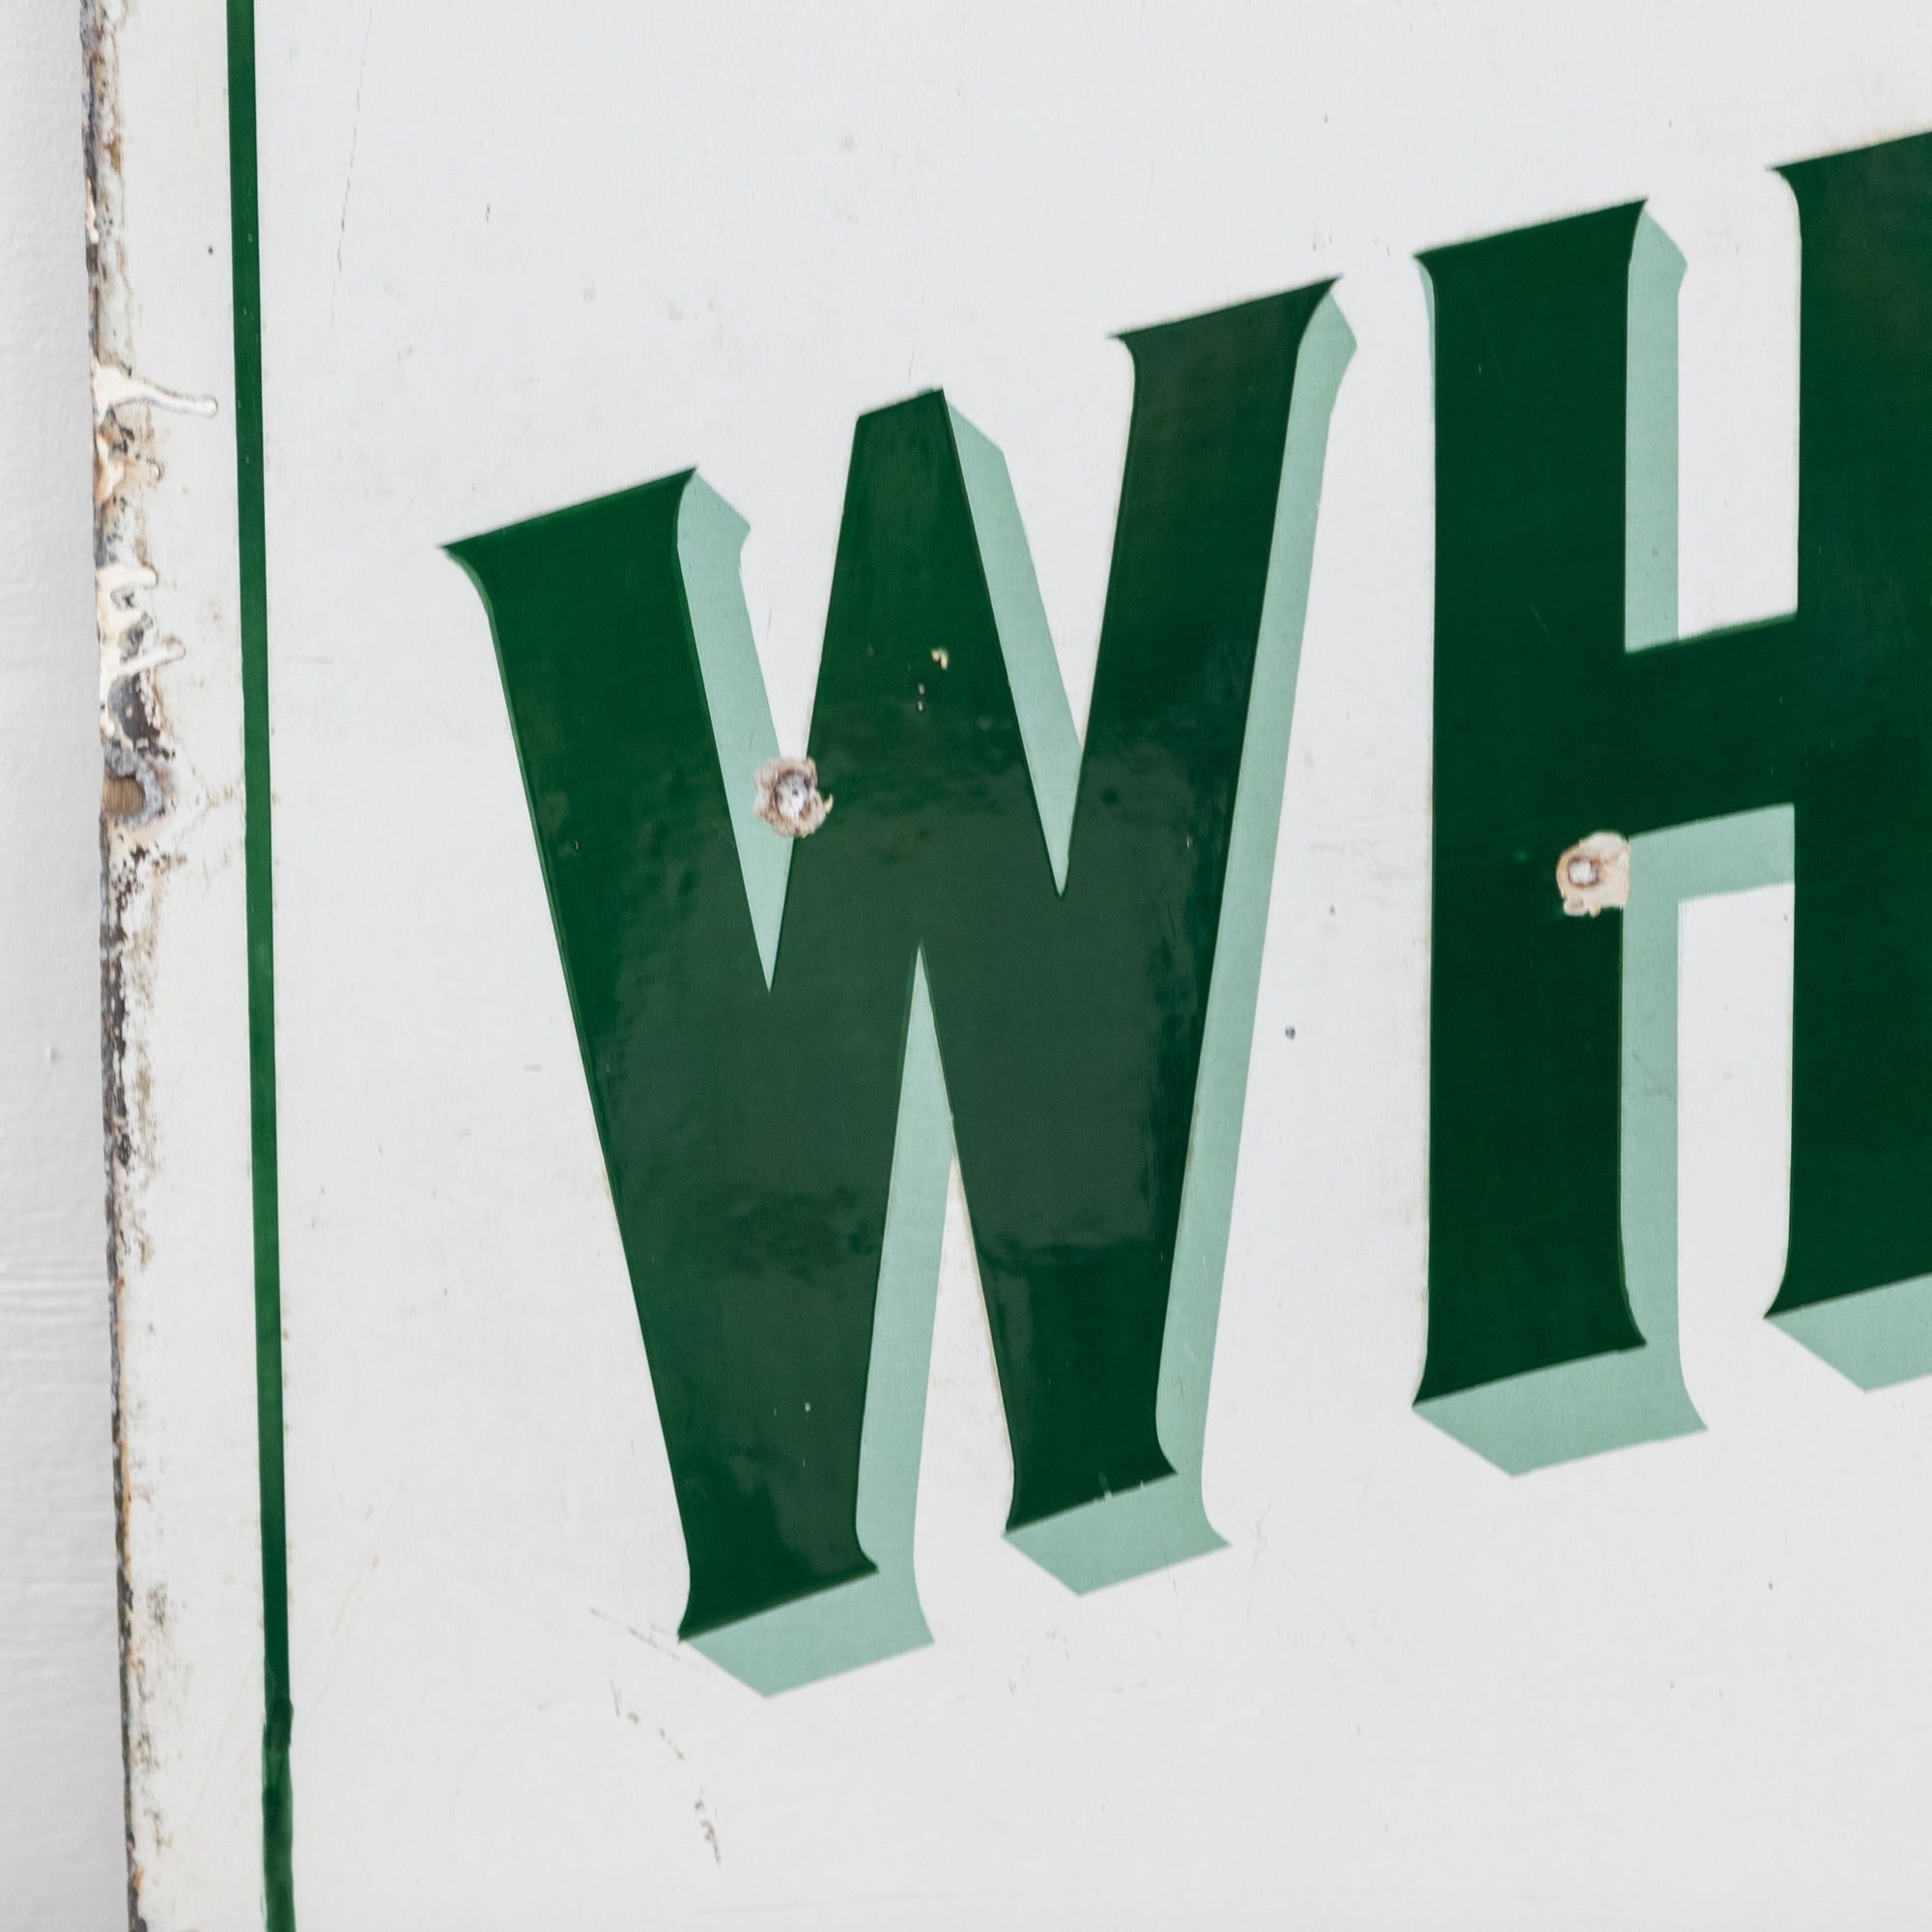 Vintage Enamel Green & White London Ironmonger Shop Sign